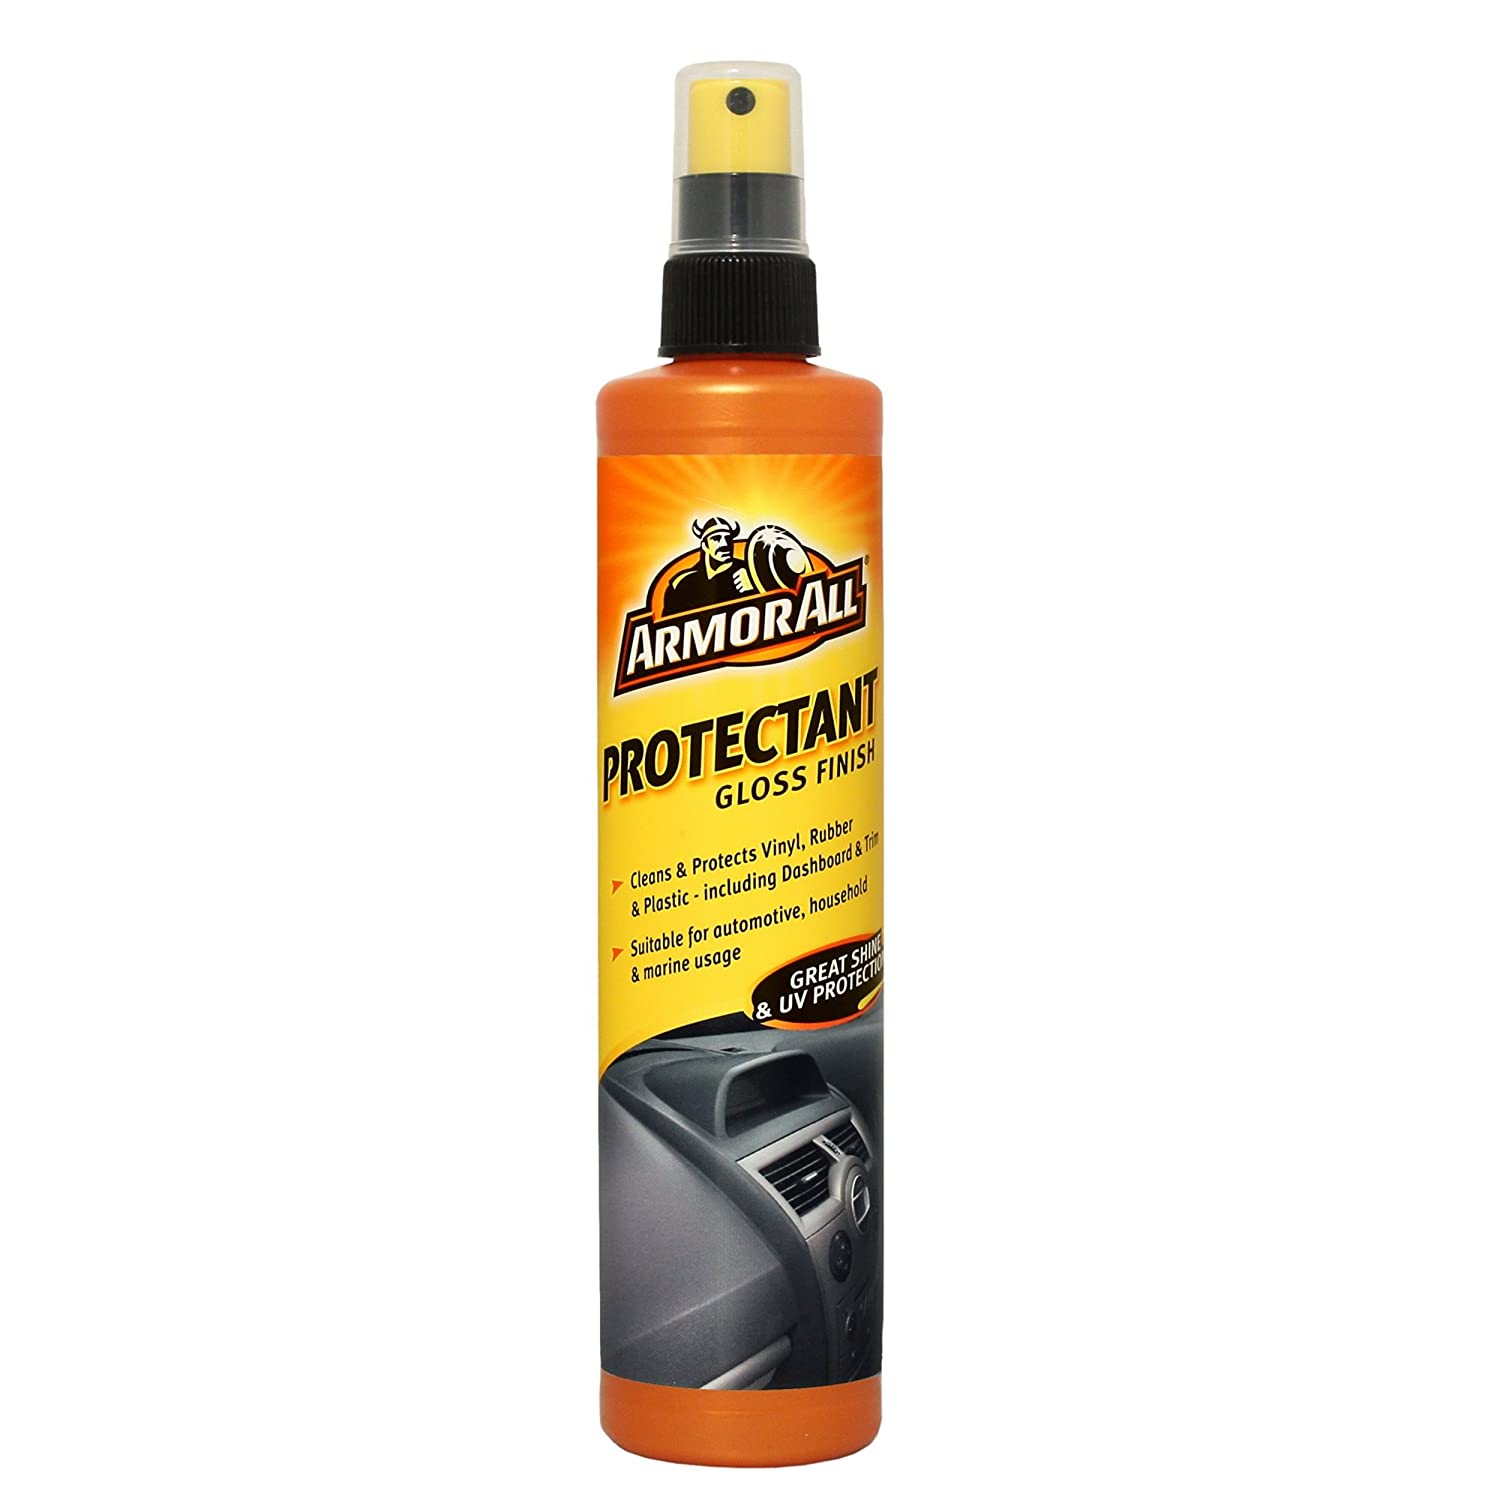 Armor All GAA10013EN Protectant Gloss Finish Armorall B0001OZH1C Automotive Accessories Hand Tools Mechanics and Automotive Tools Valeting Accessories